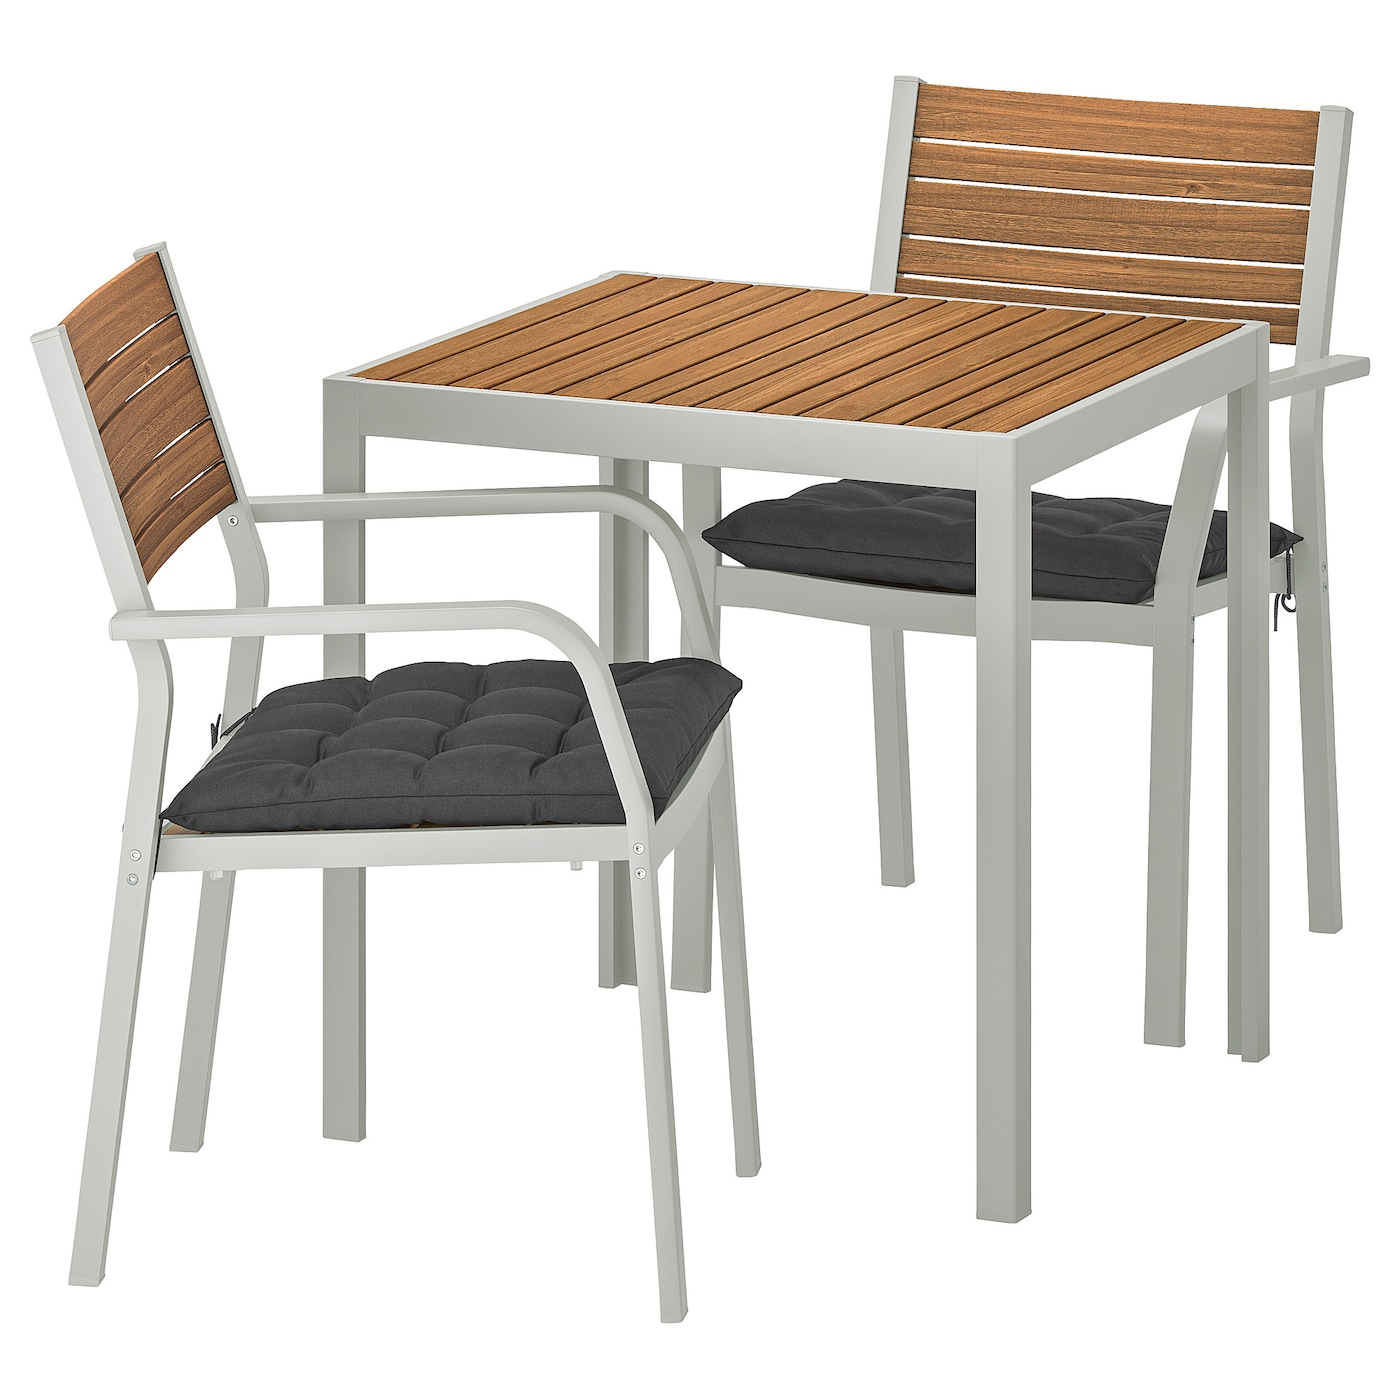 Sjalland Table 2 Chairs W Armrests Outdoor Light Brown Hallo Black Ikea